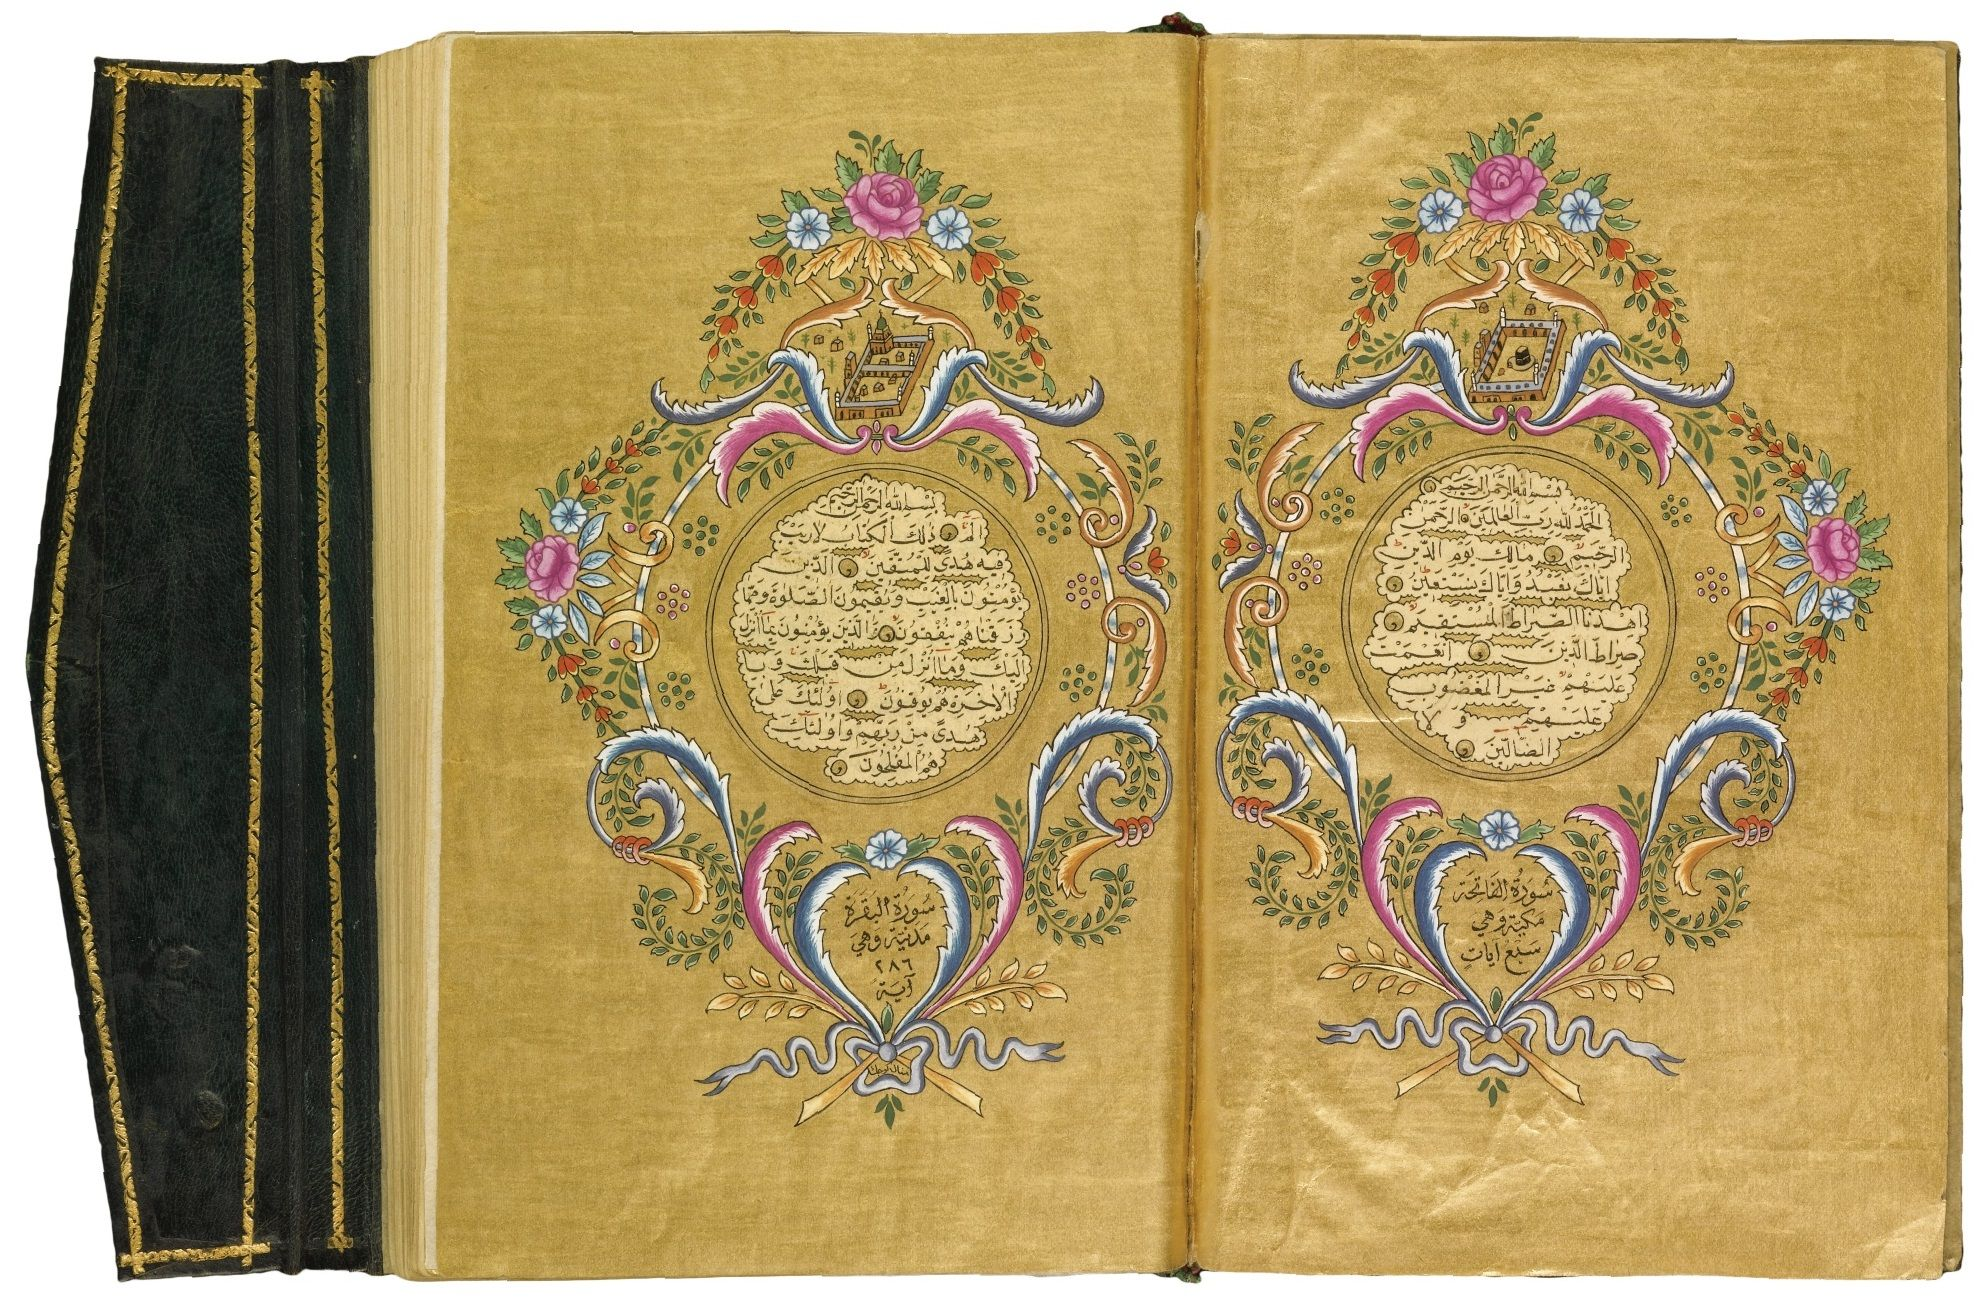 marginal illuminations in colours and gold issuing floral sprays, two opening illuminated double page frontispieces decorated in the rococo style with polychrome flowers on solid gold grounds, the opening page with depictions of Mecca and Medina, illuminated finispiece with colophon, later brown morocco binding decorated with gold rococo scrolls, with flap 18 by 11.5cm